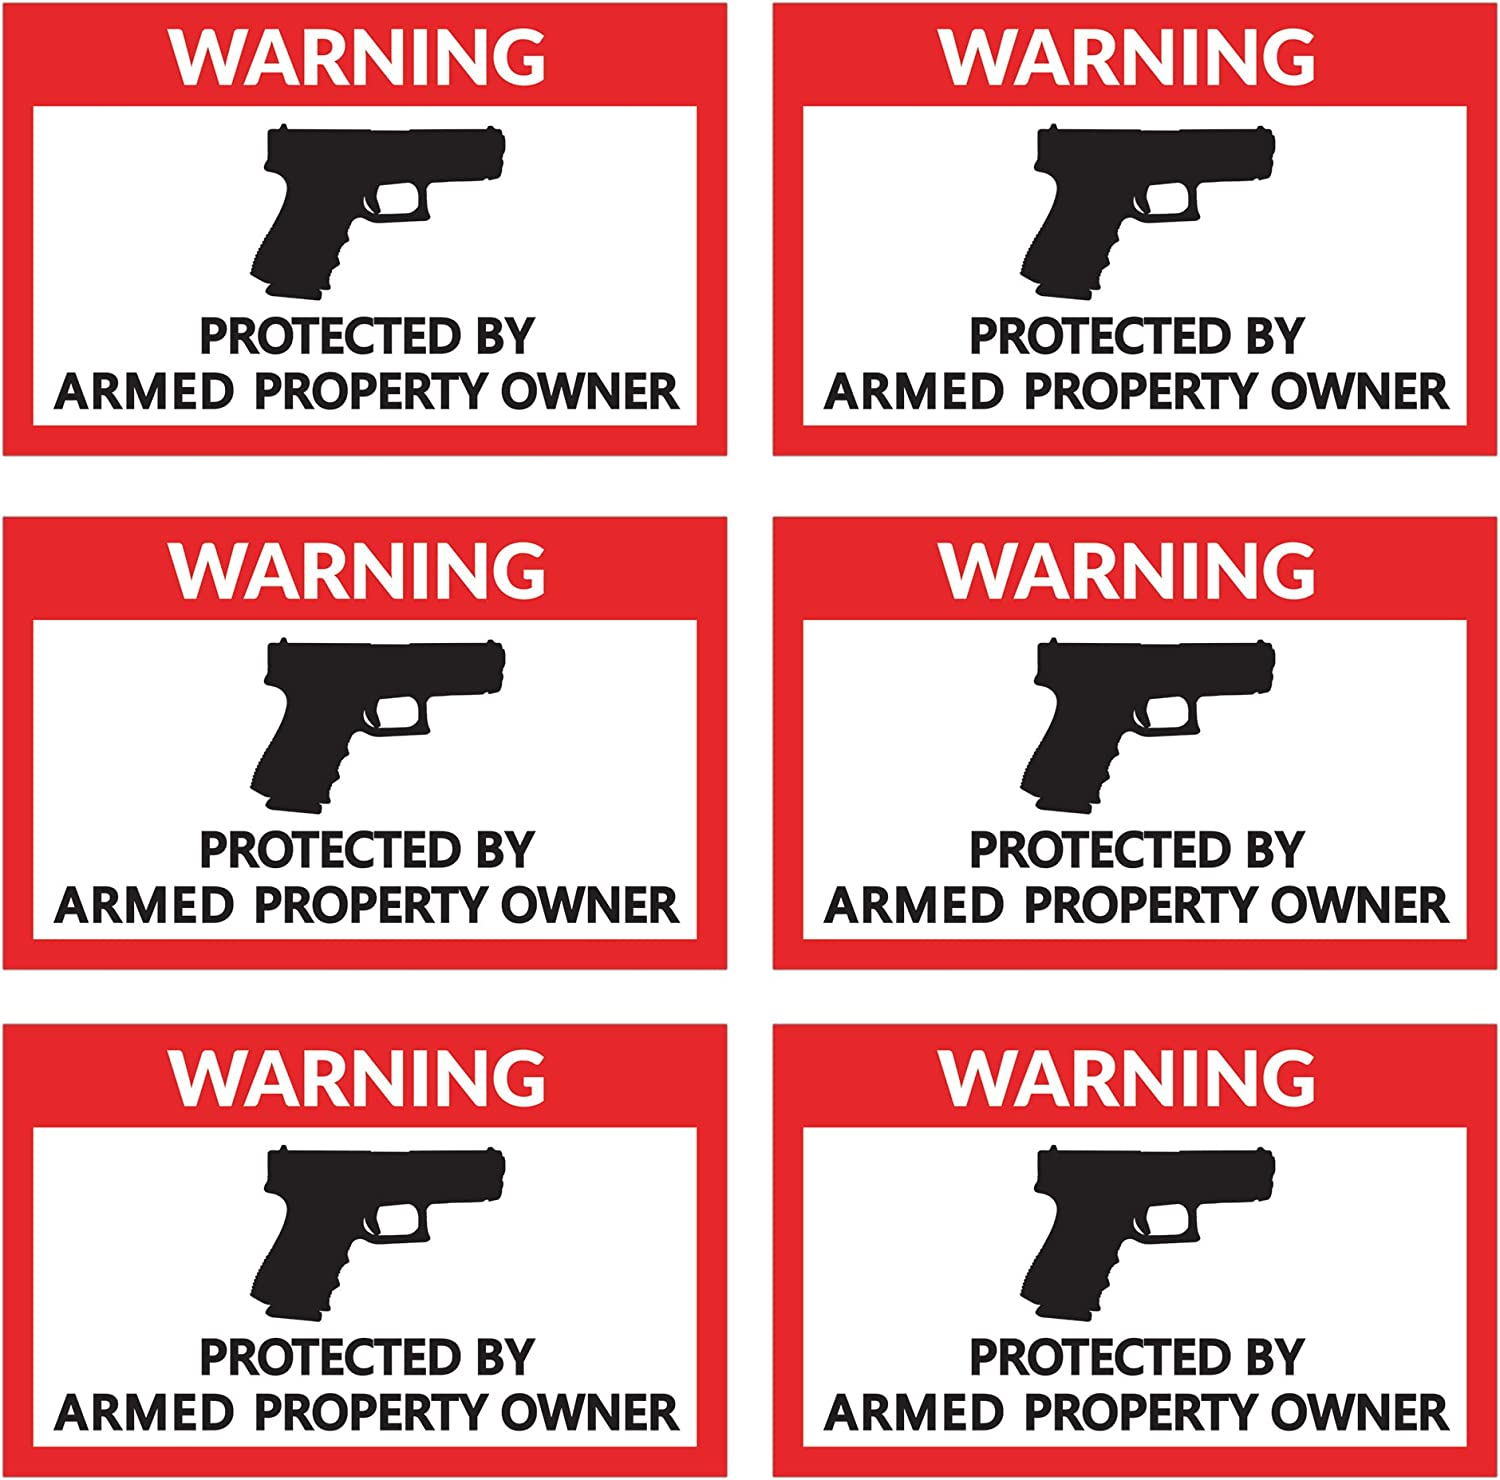 Protected by Armed Property Owner - 6 Pack - 4 x 2.5 inches - Warning Alert Stickers - Indoor & Outdoor Use